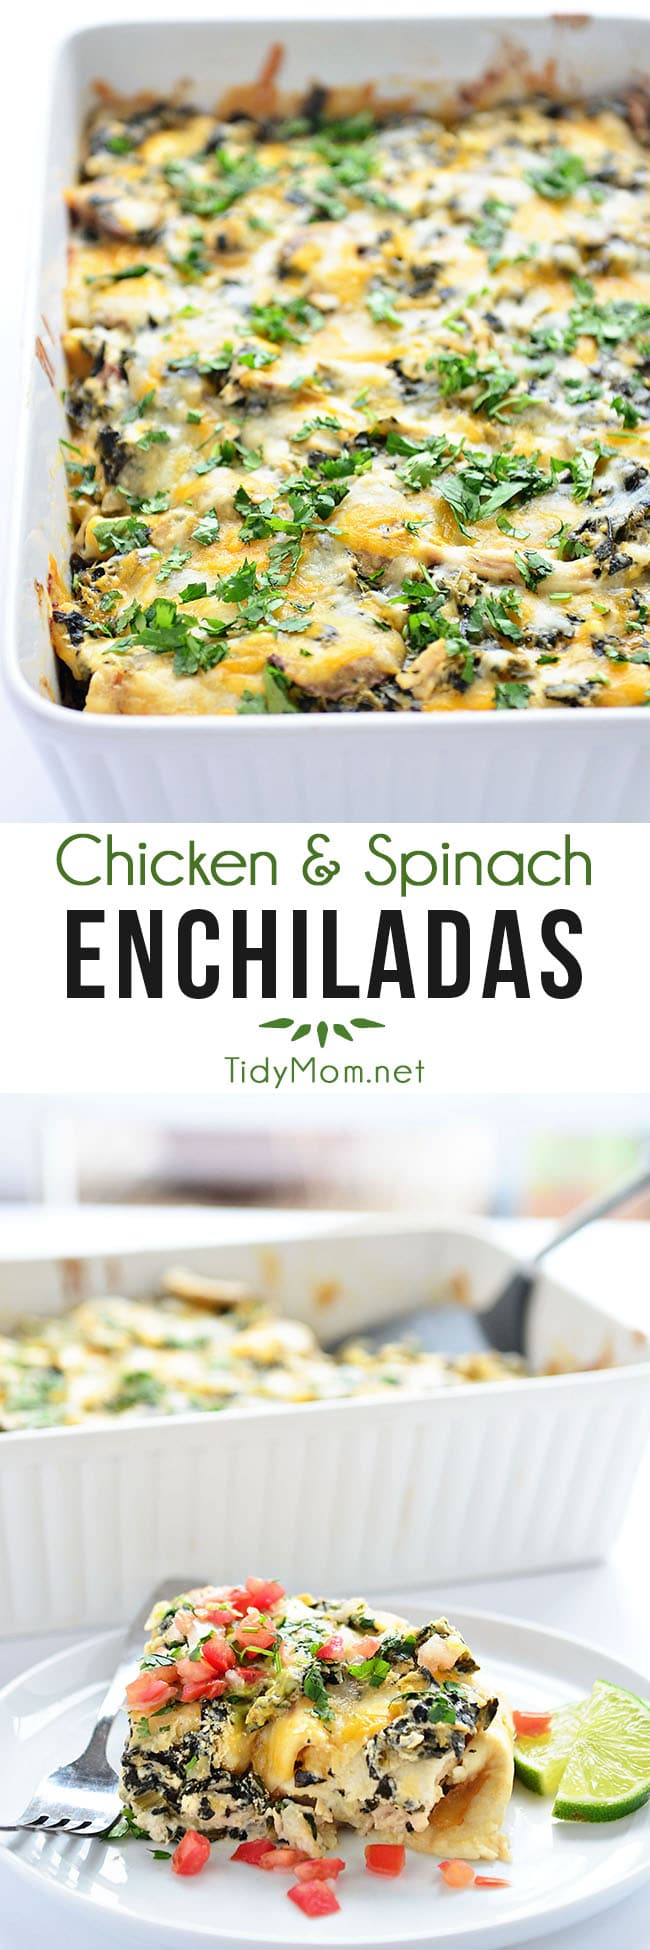 Chicken and Spinach Enchiladas are a family favorite! A simple casserole that comes together quickly and tastes rich and savory, bursting with flavor!  Printable recipe + how-to video at TidyMom.net #enchiladas #casserole #chicken #chickendinner #spinach